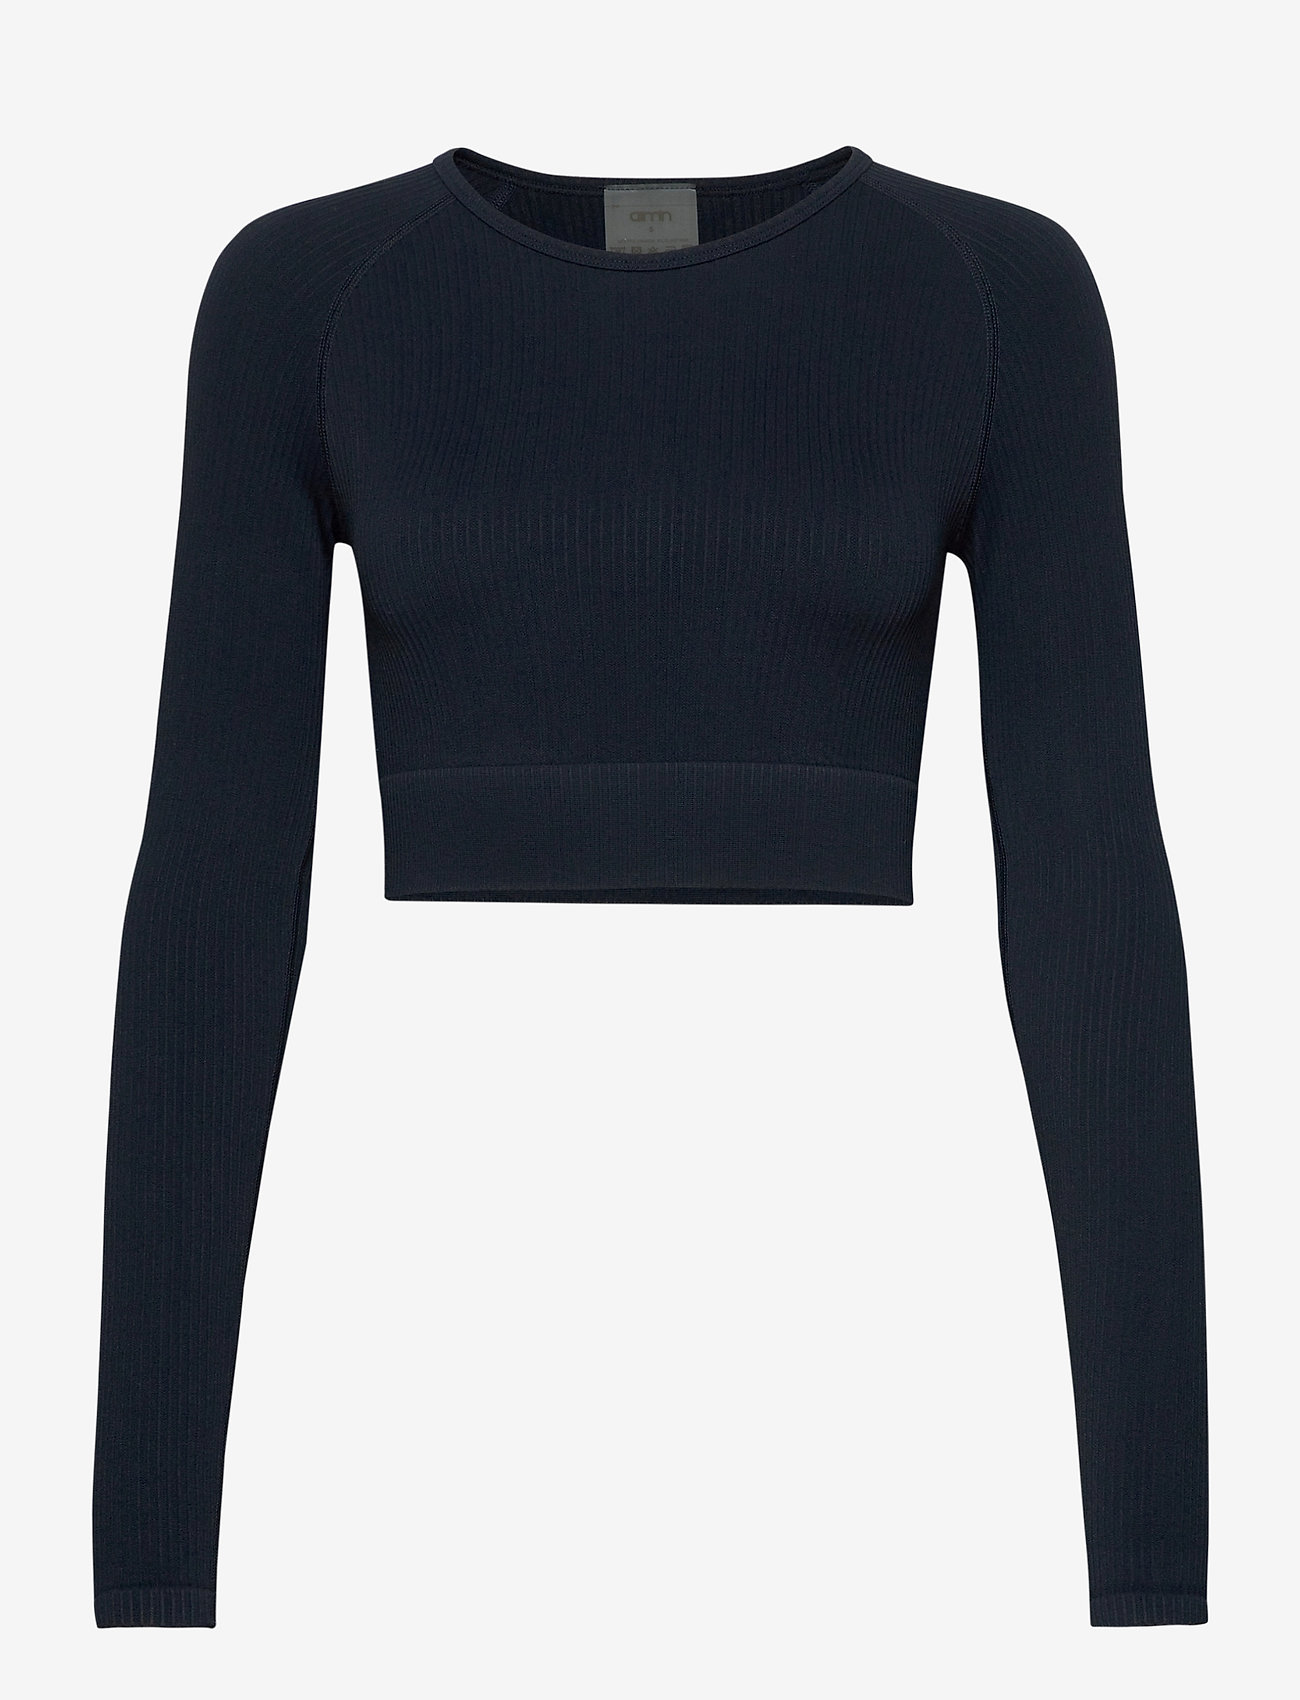 AIM'N - Navy Ribbed Crop Long Sleeve - langærmede toppe - navy - 1